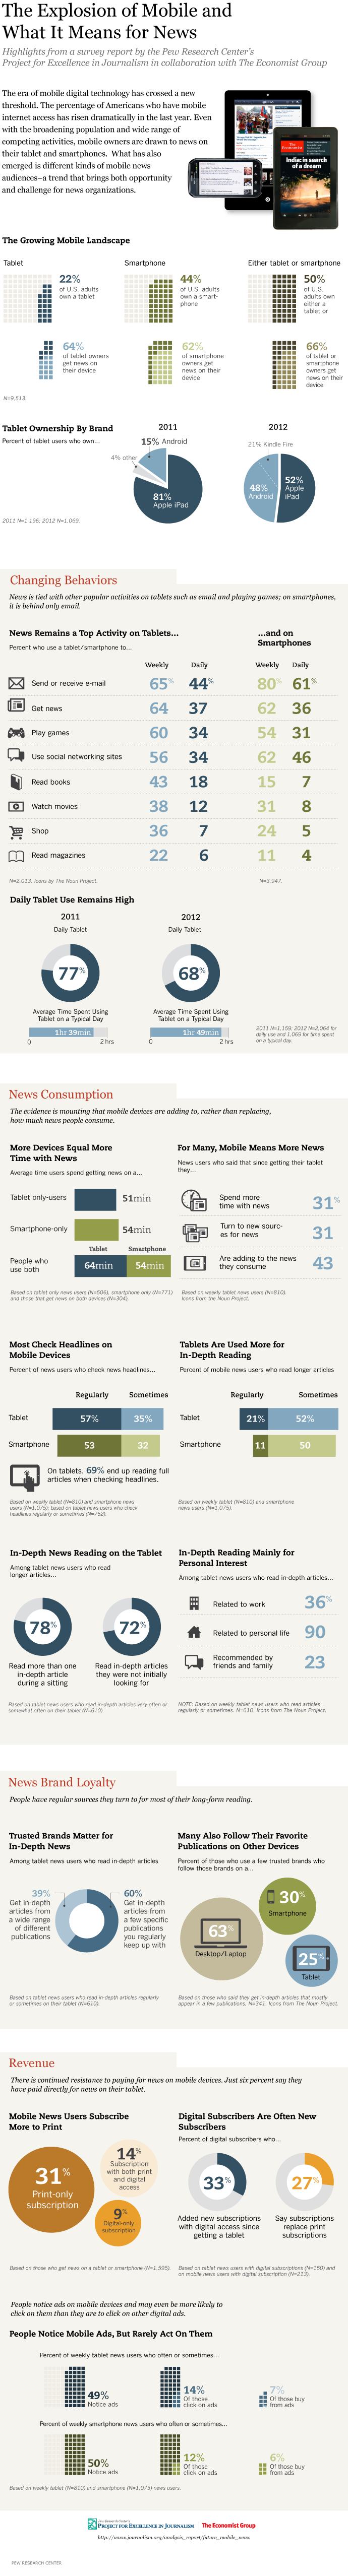 future_of_mobile_news_infographic